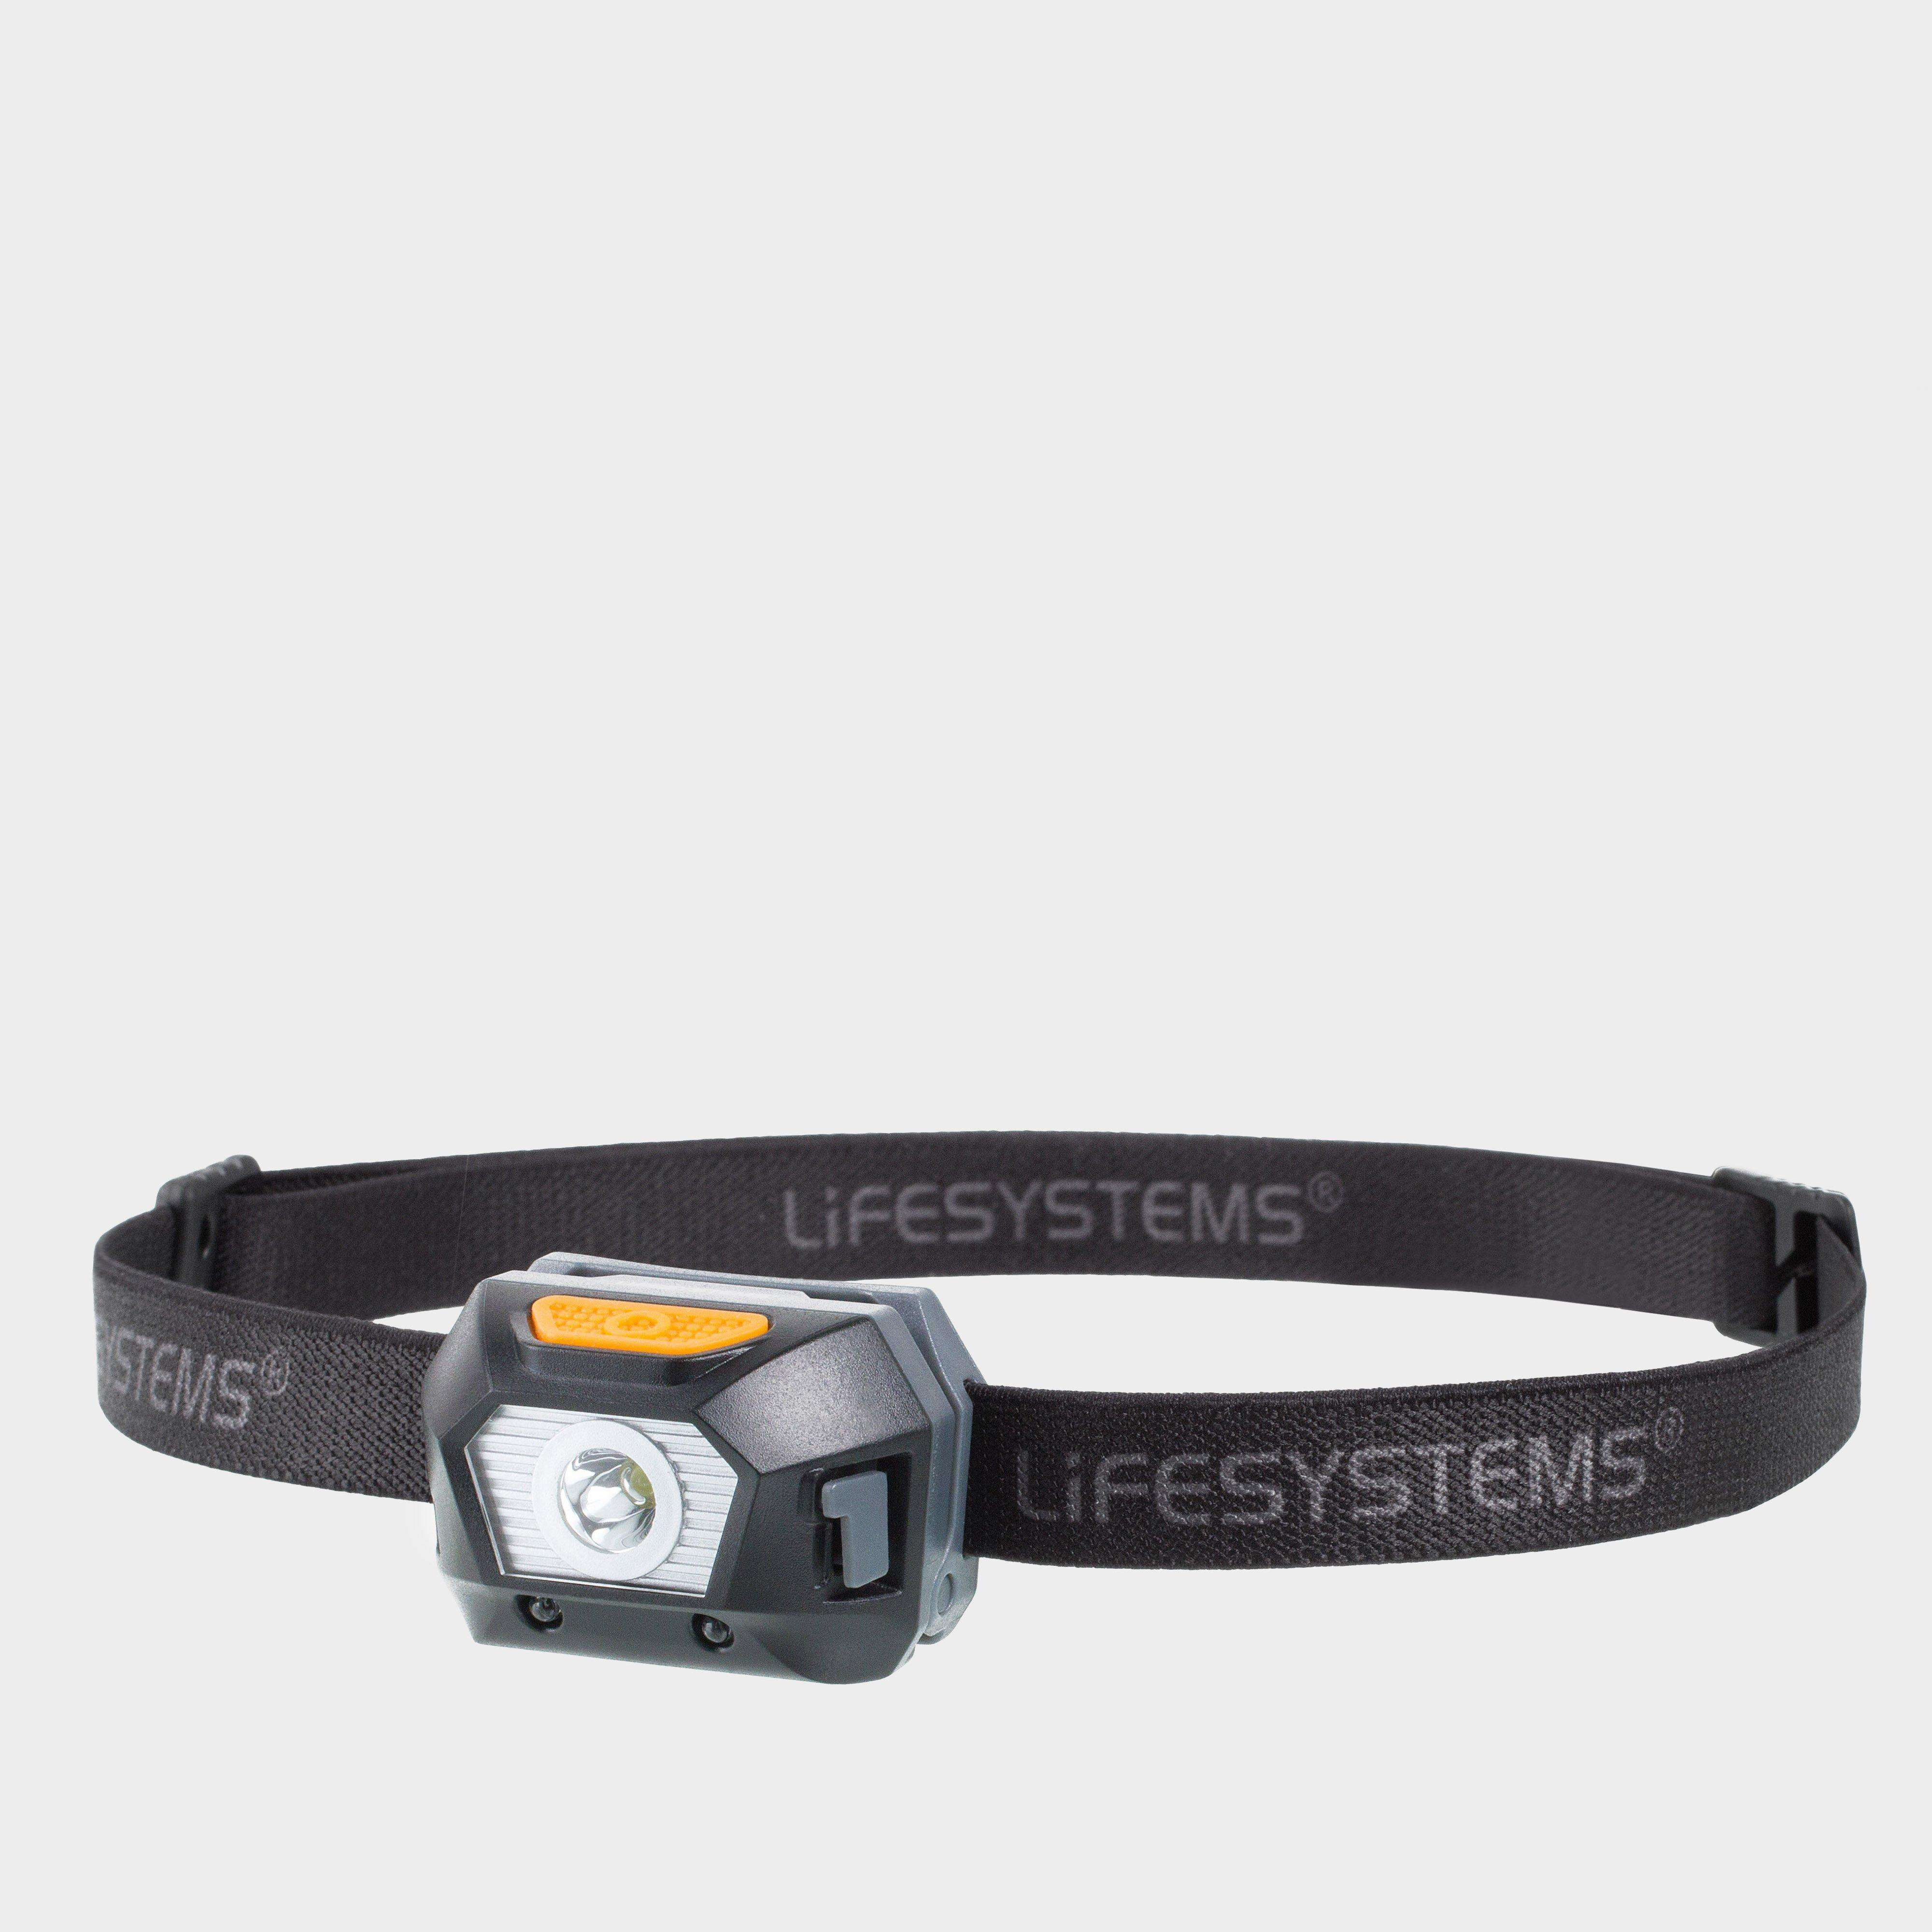 LIFESYSTEMS Intensity 105 LED Head Torch